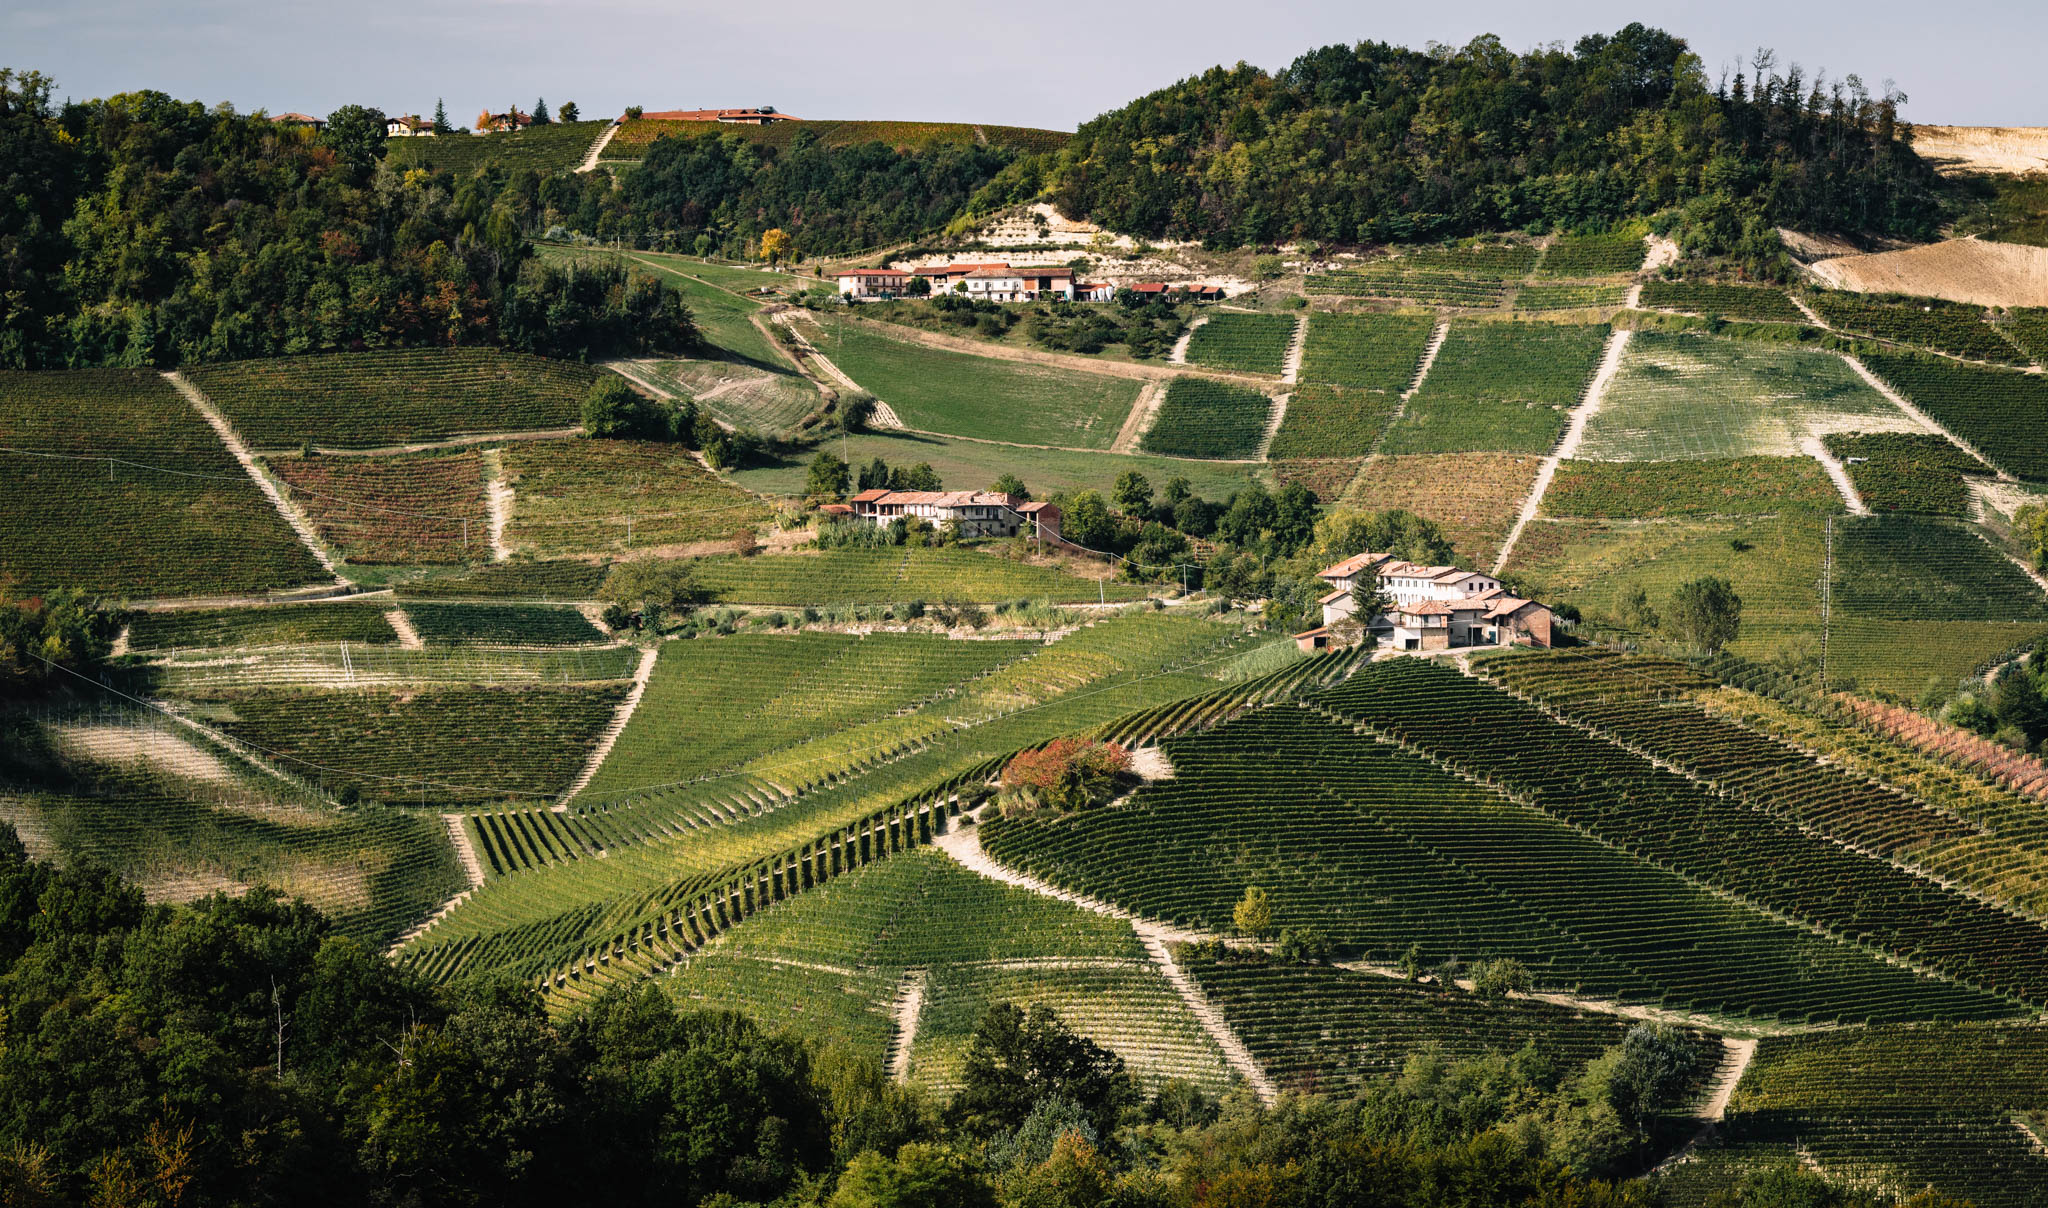 Italy : Piedmont : Elio Grasso's estate surrounded by the Ginestra cru in Monforte d'Alba